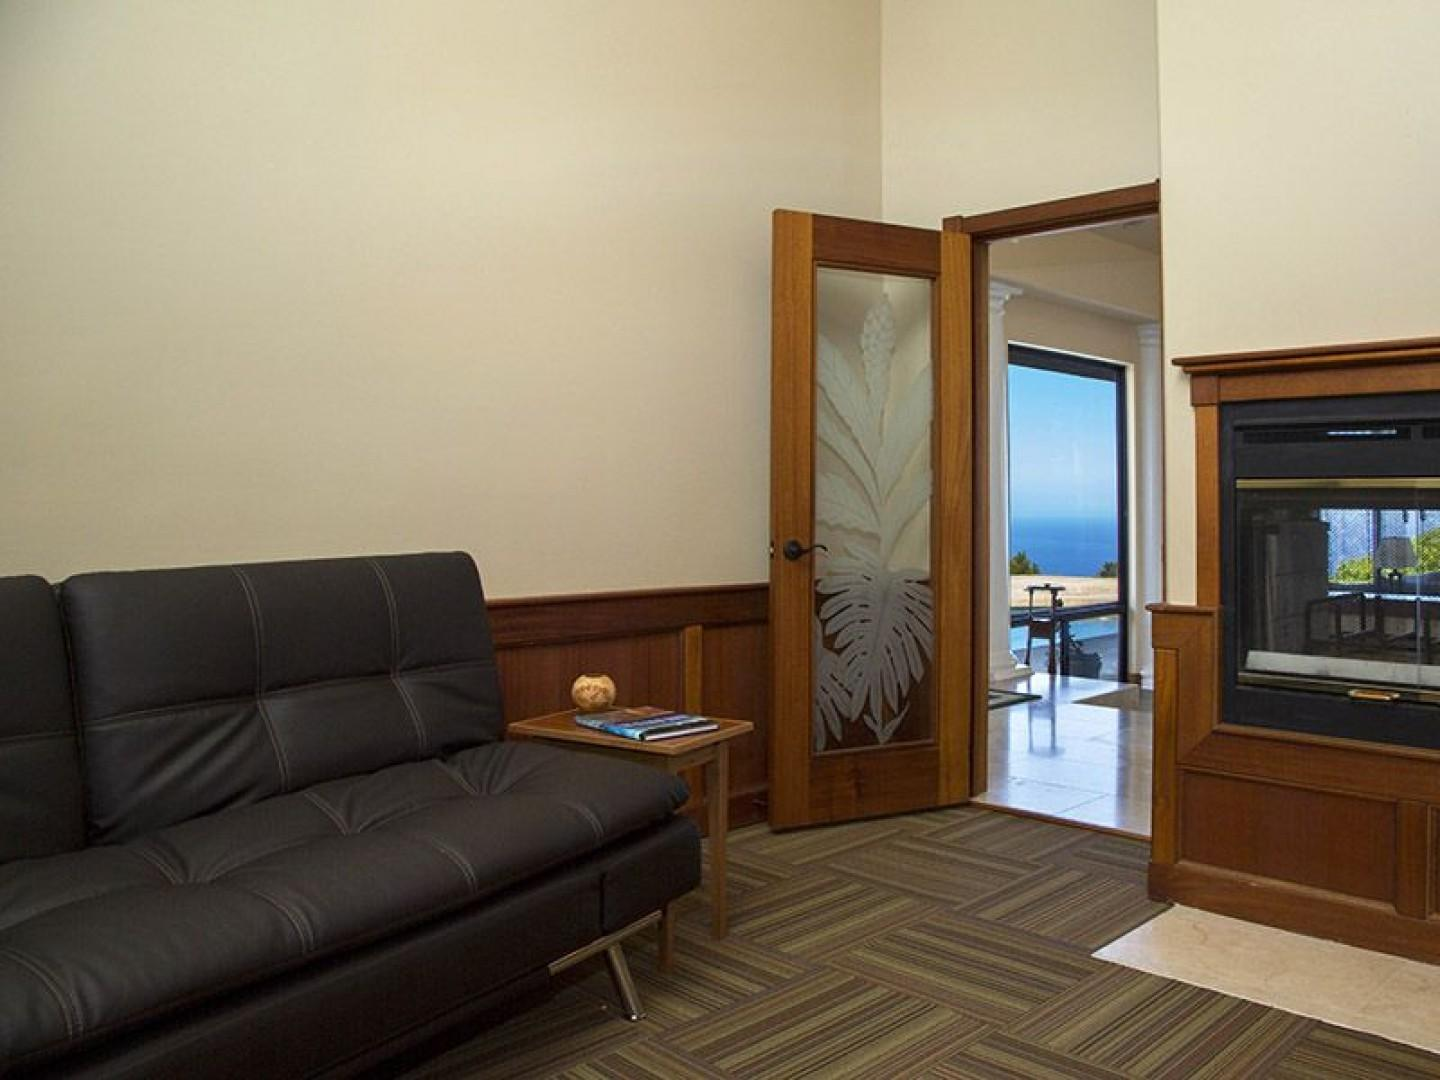 Guest bedroom has a leather top full size eurolounger